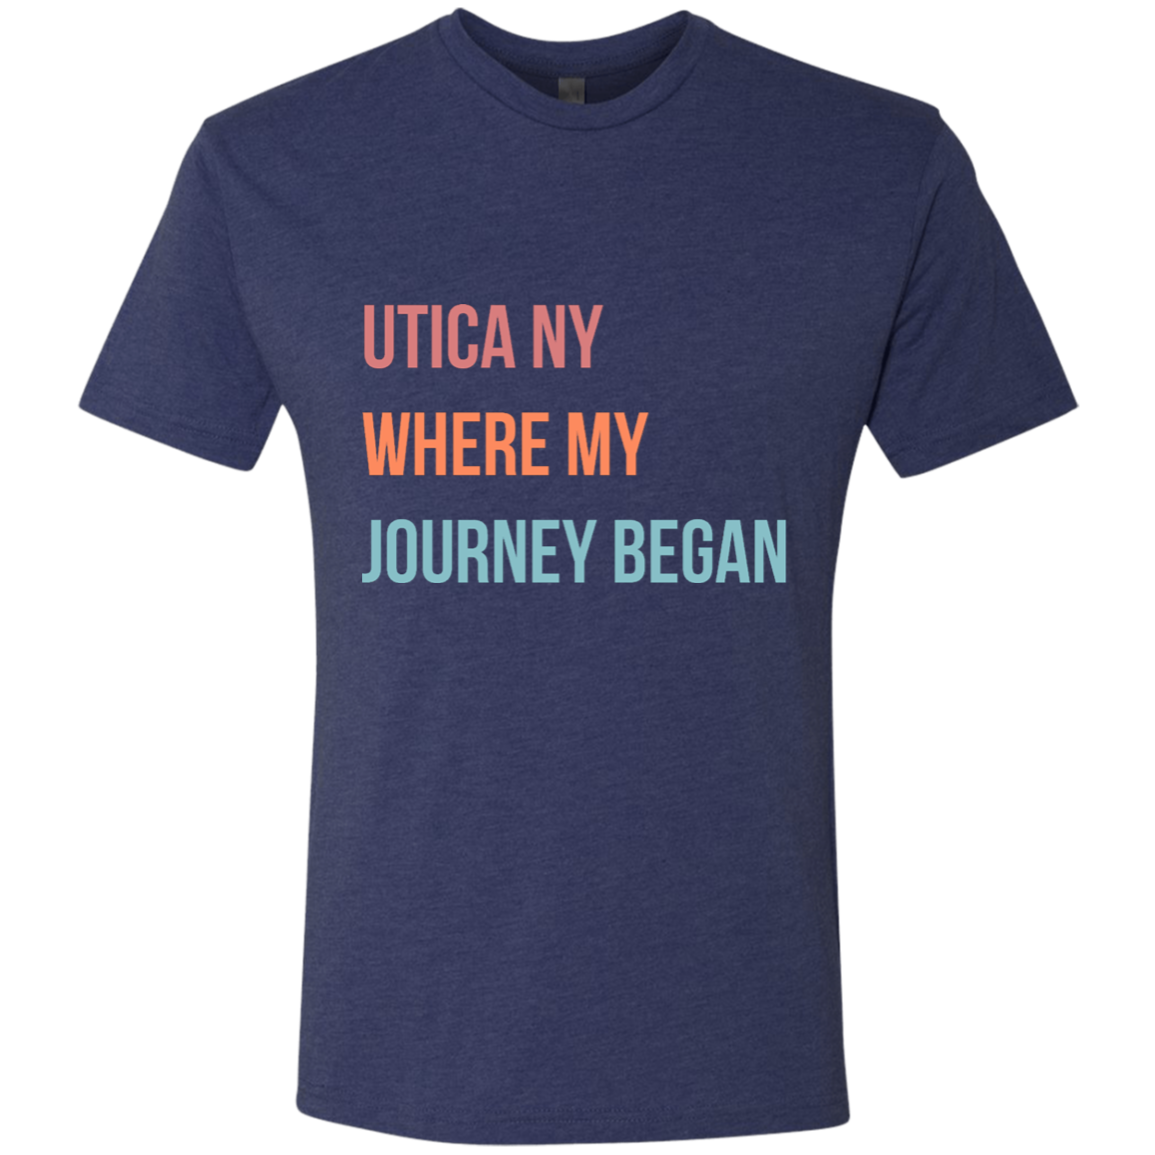 Utica NY Where my journey began